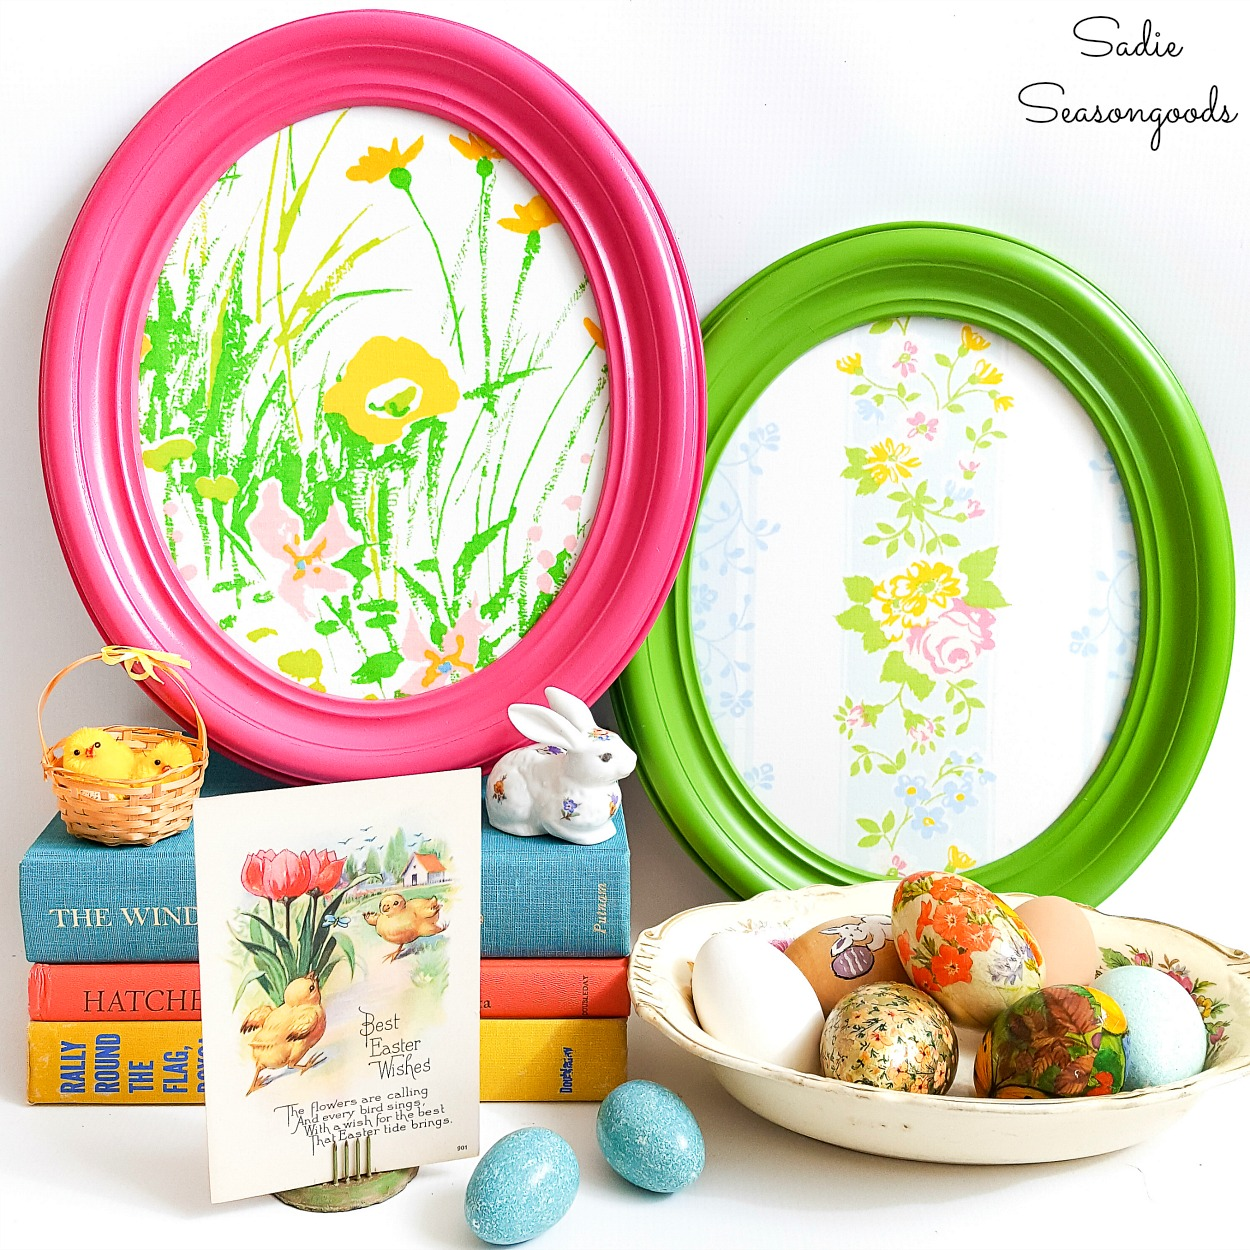 DIY Easter Egg Decor from Vintage Oval Frames